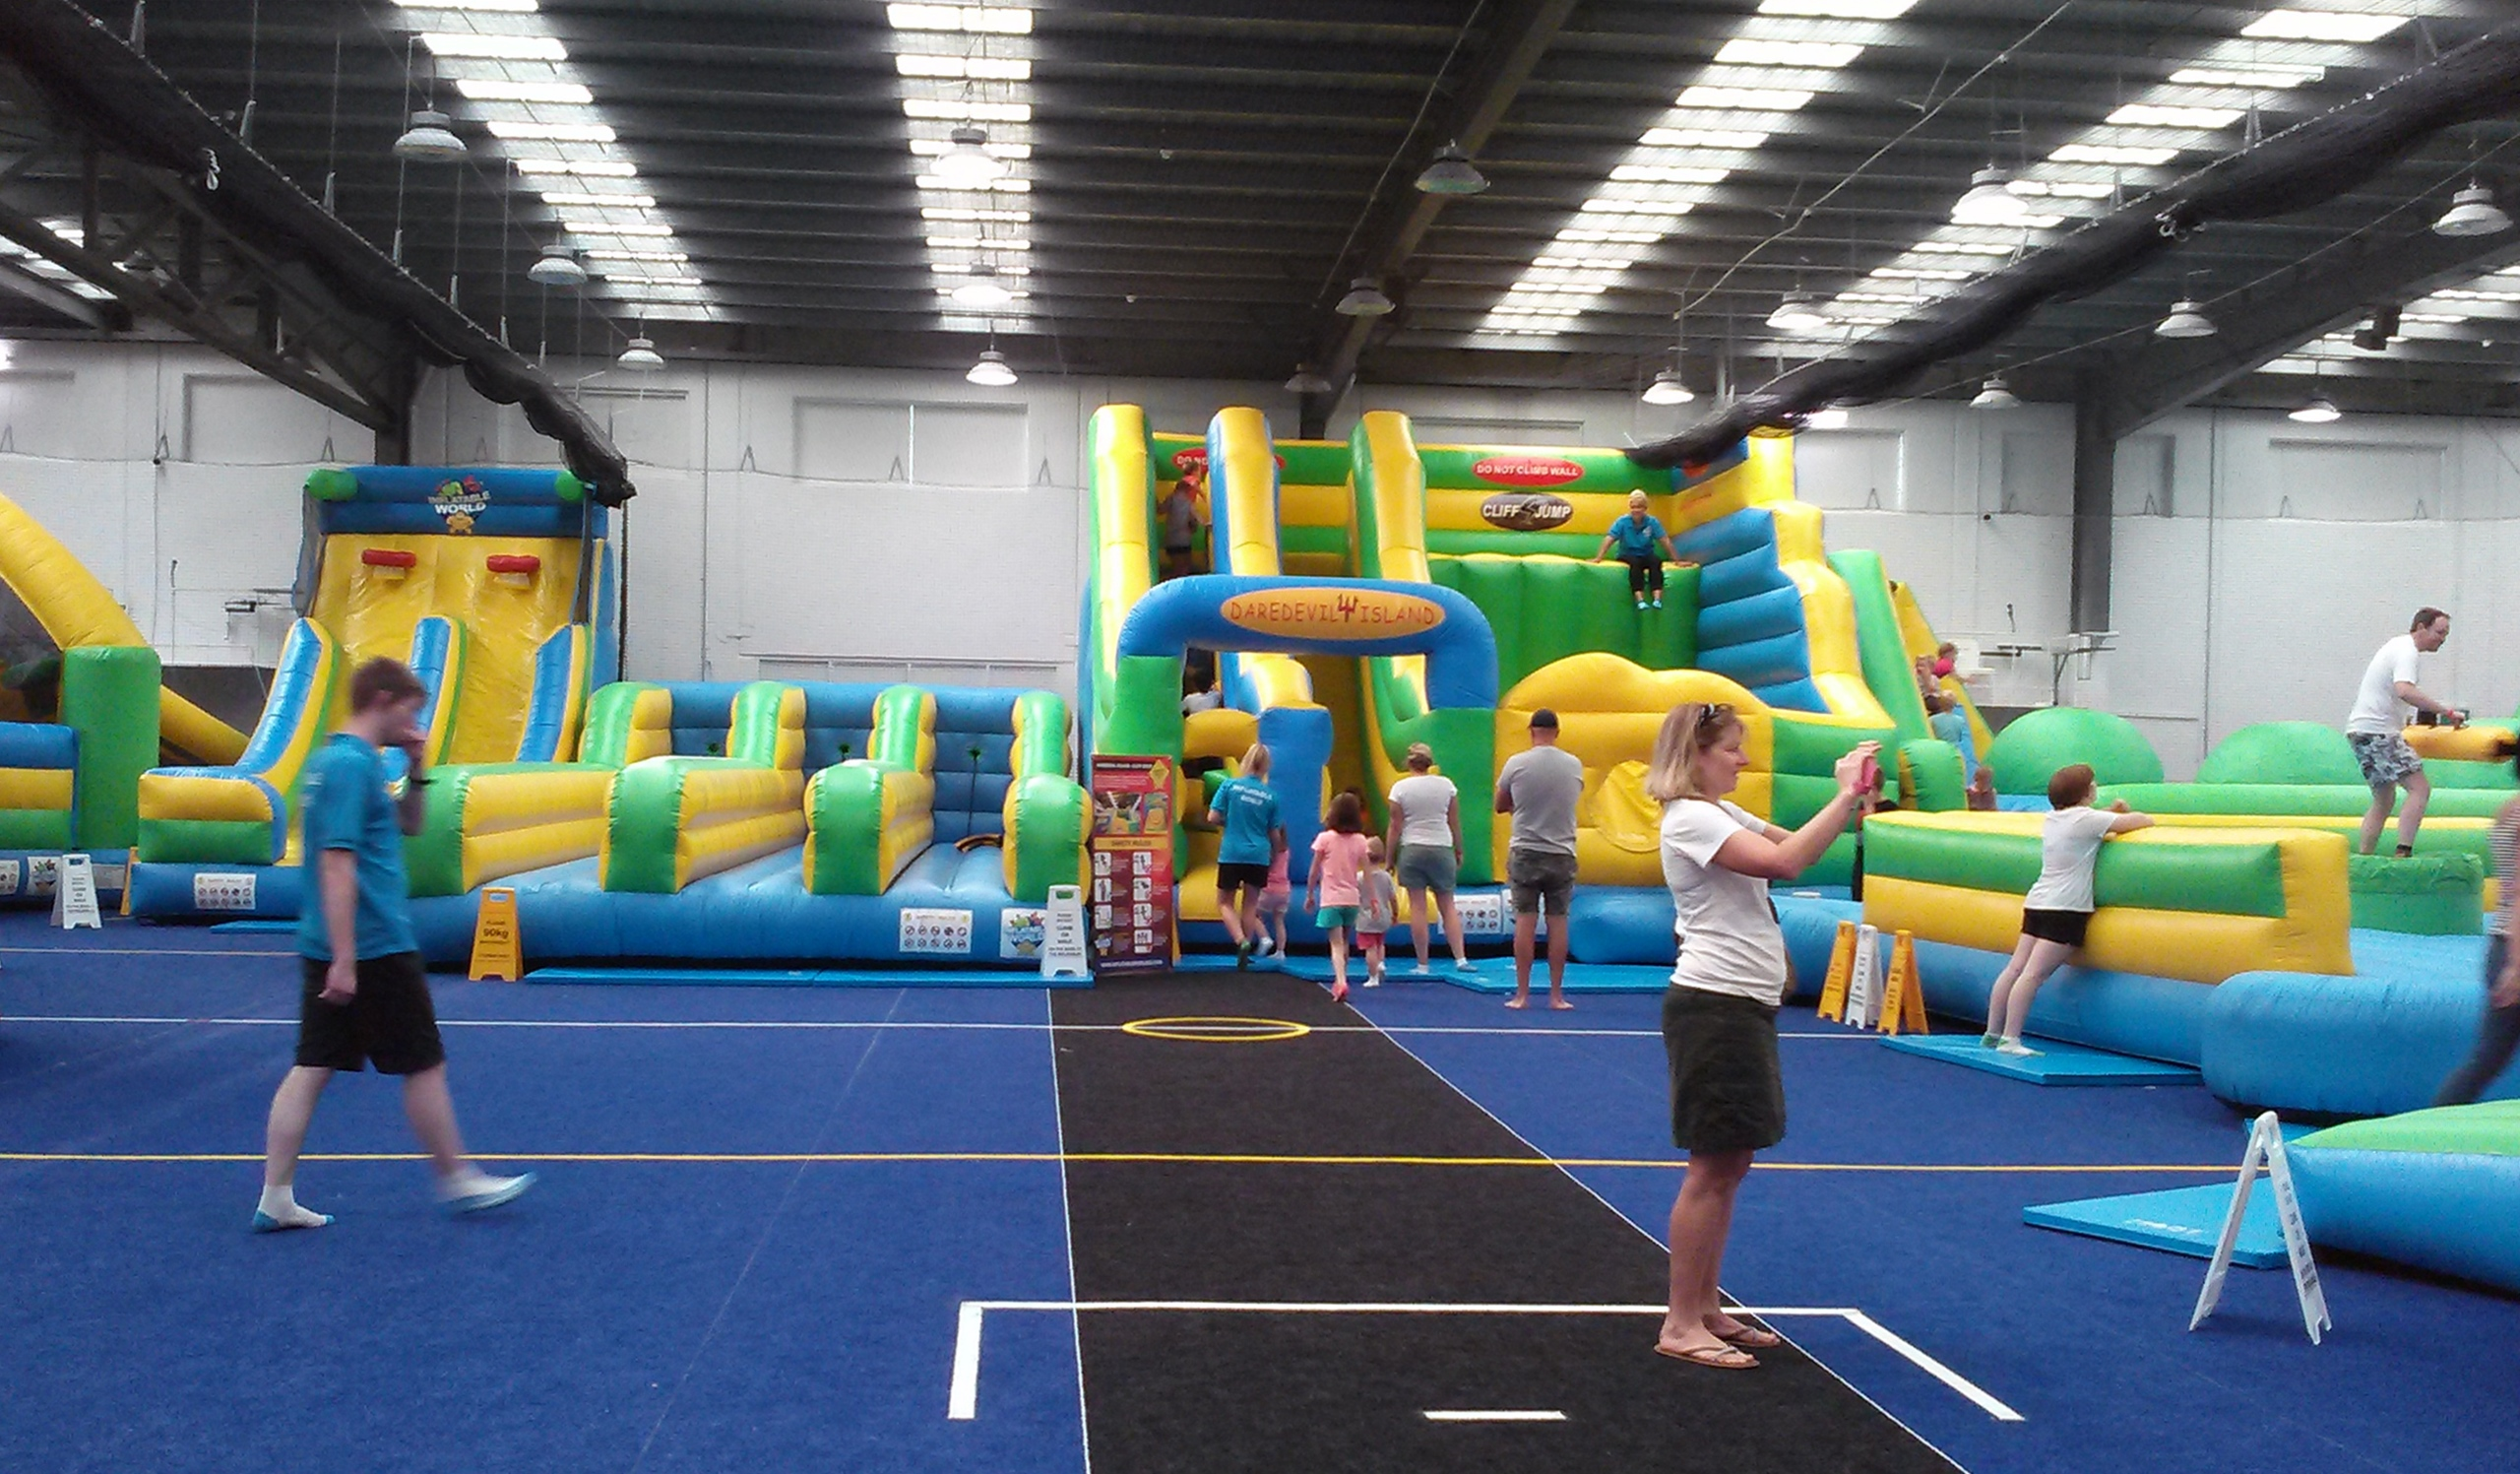 Kambah Inflatable World Canberra - Childrens birthday party ideas canberra